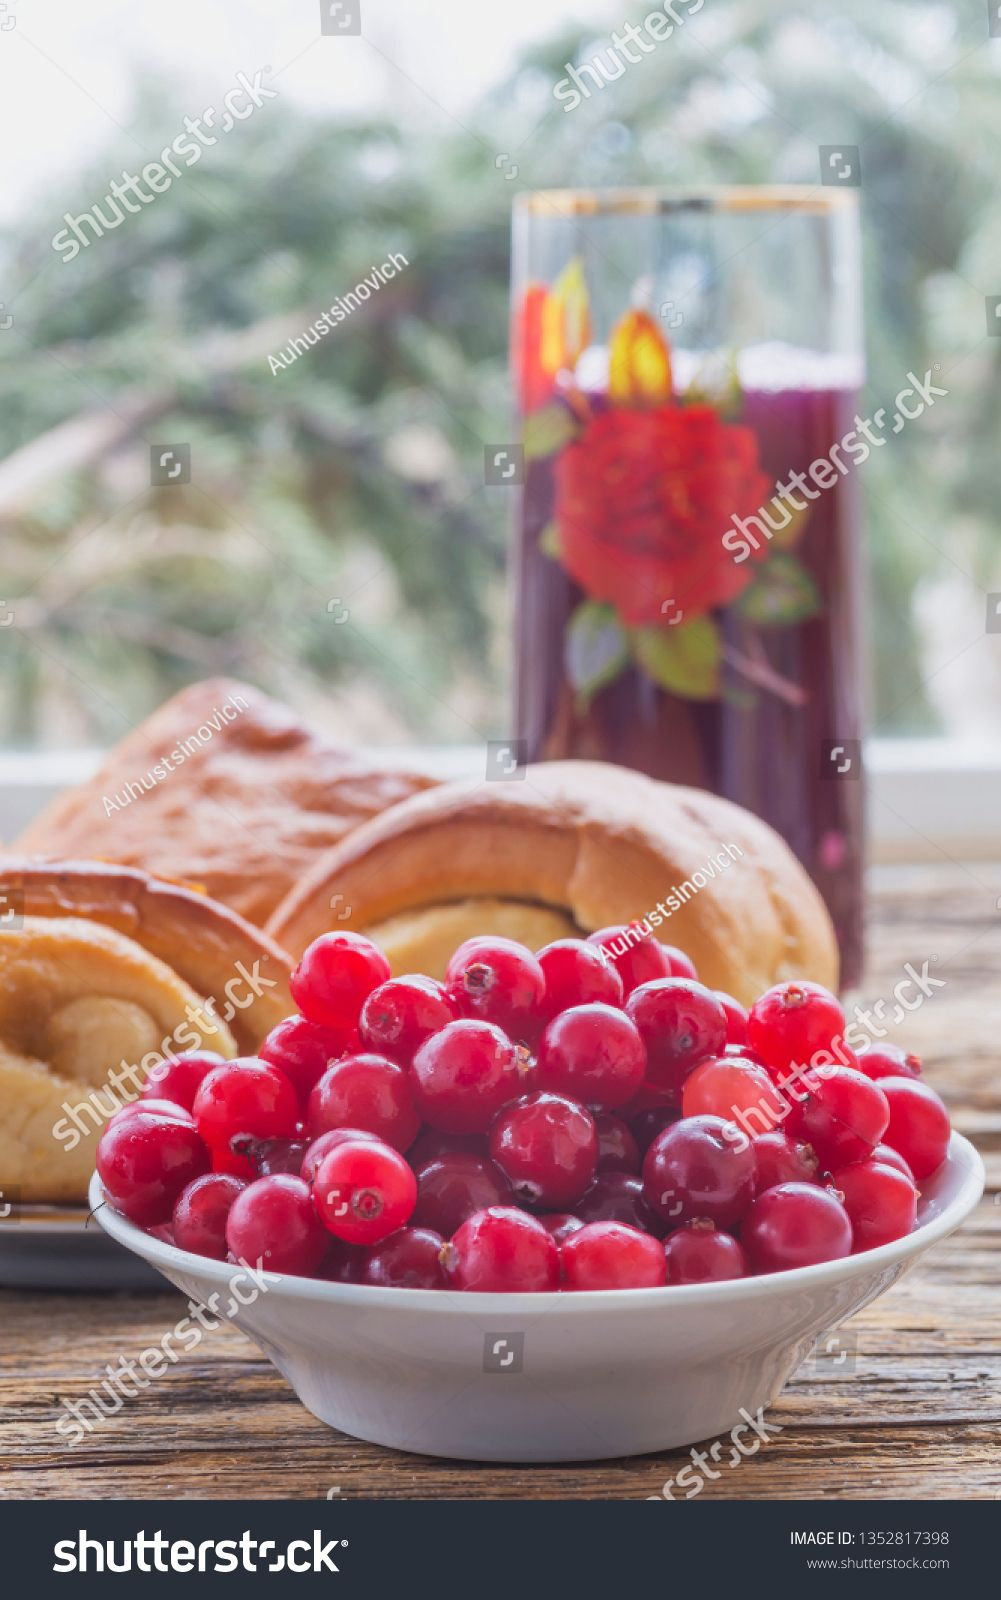 Breakfast With Cranberries Buns And Cranberry Drink Country Food Sponsored Affiliate Buns Cranberries Breakfast Cranbe Cranberry Drinks Food Cranberry